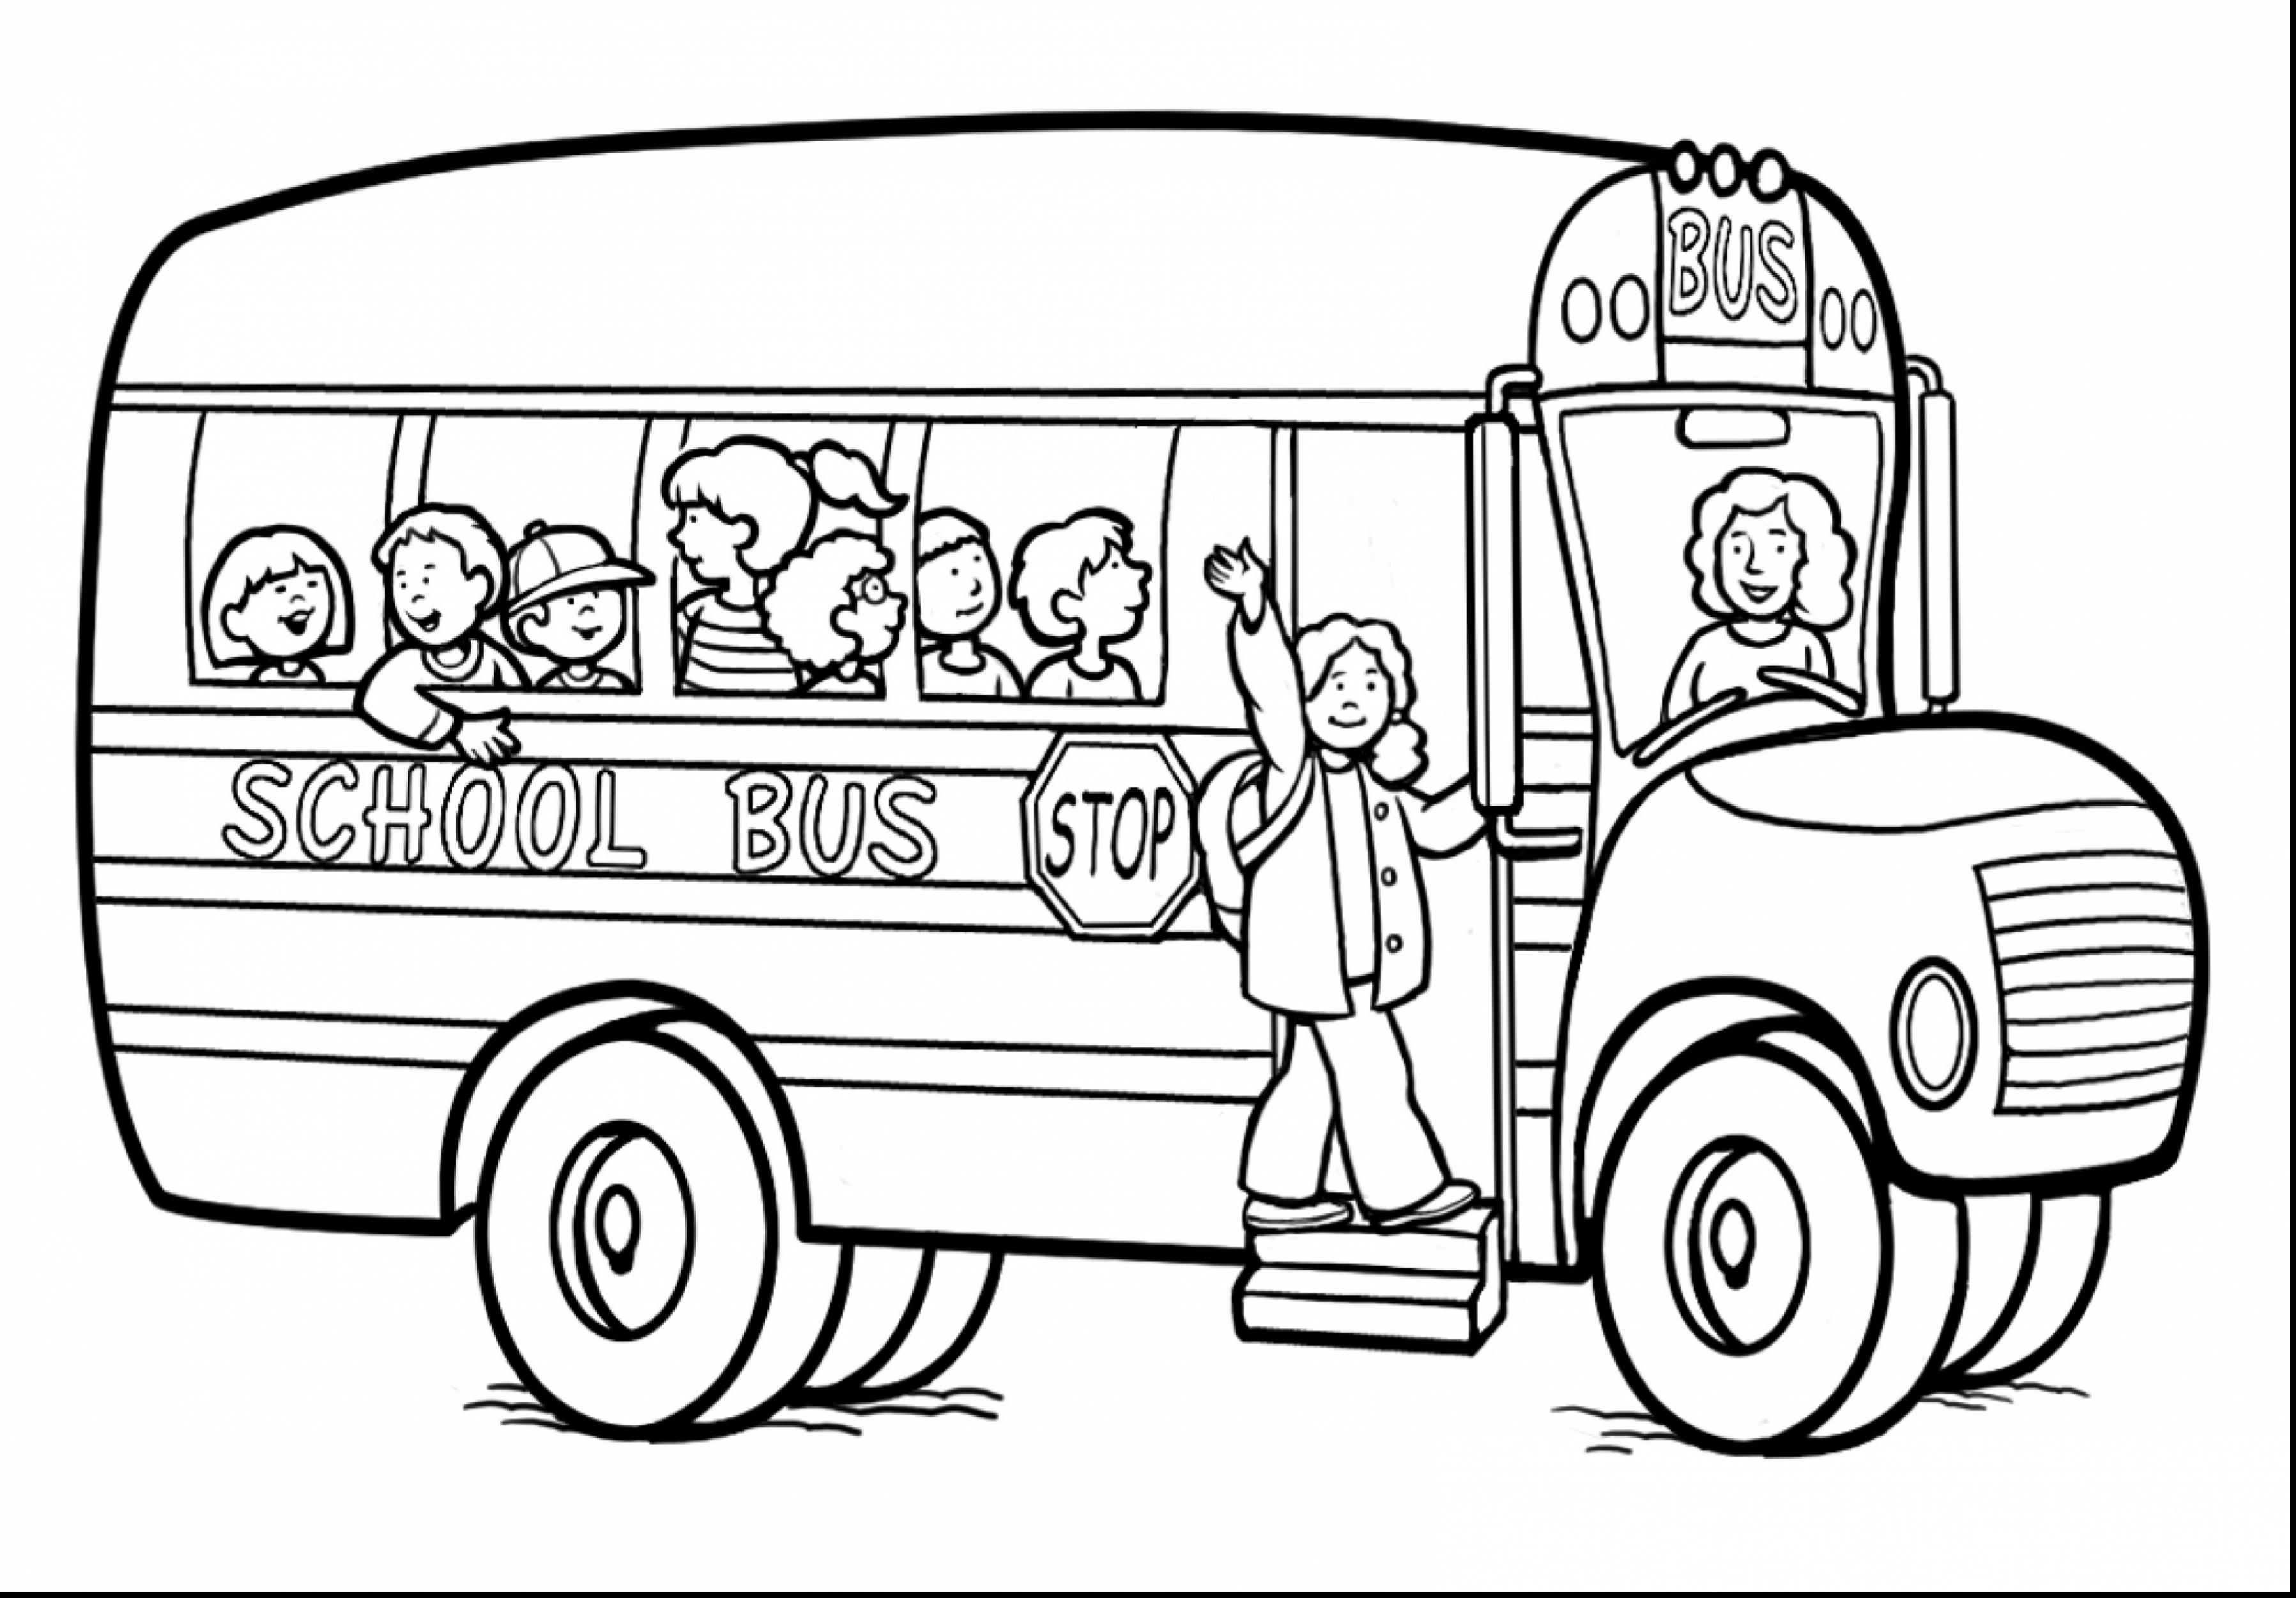 Black and white clipart bus transparent download Free Bus Clipart Black And White, Download Free Clip Art, Free Clip ... transparent download